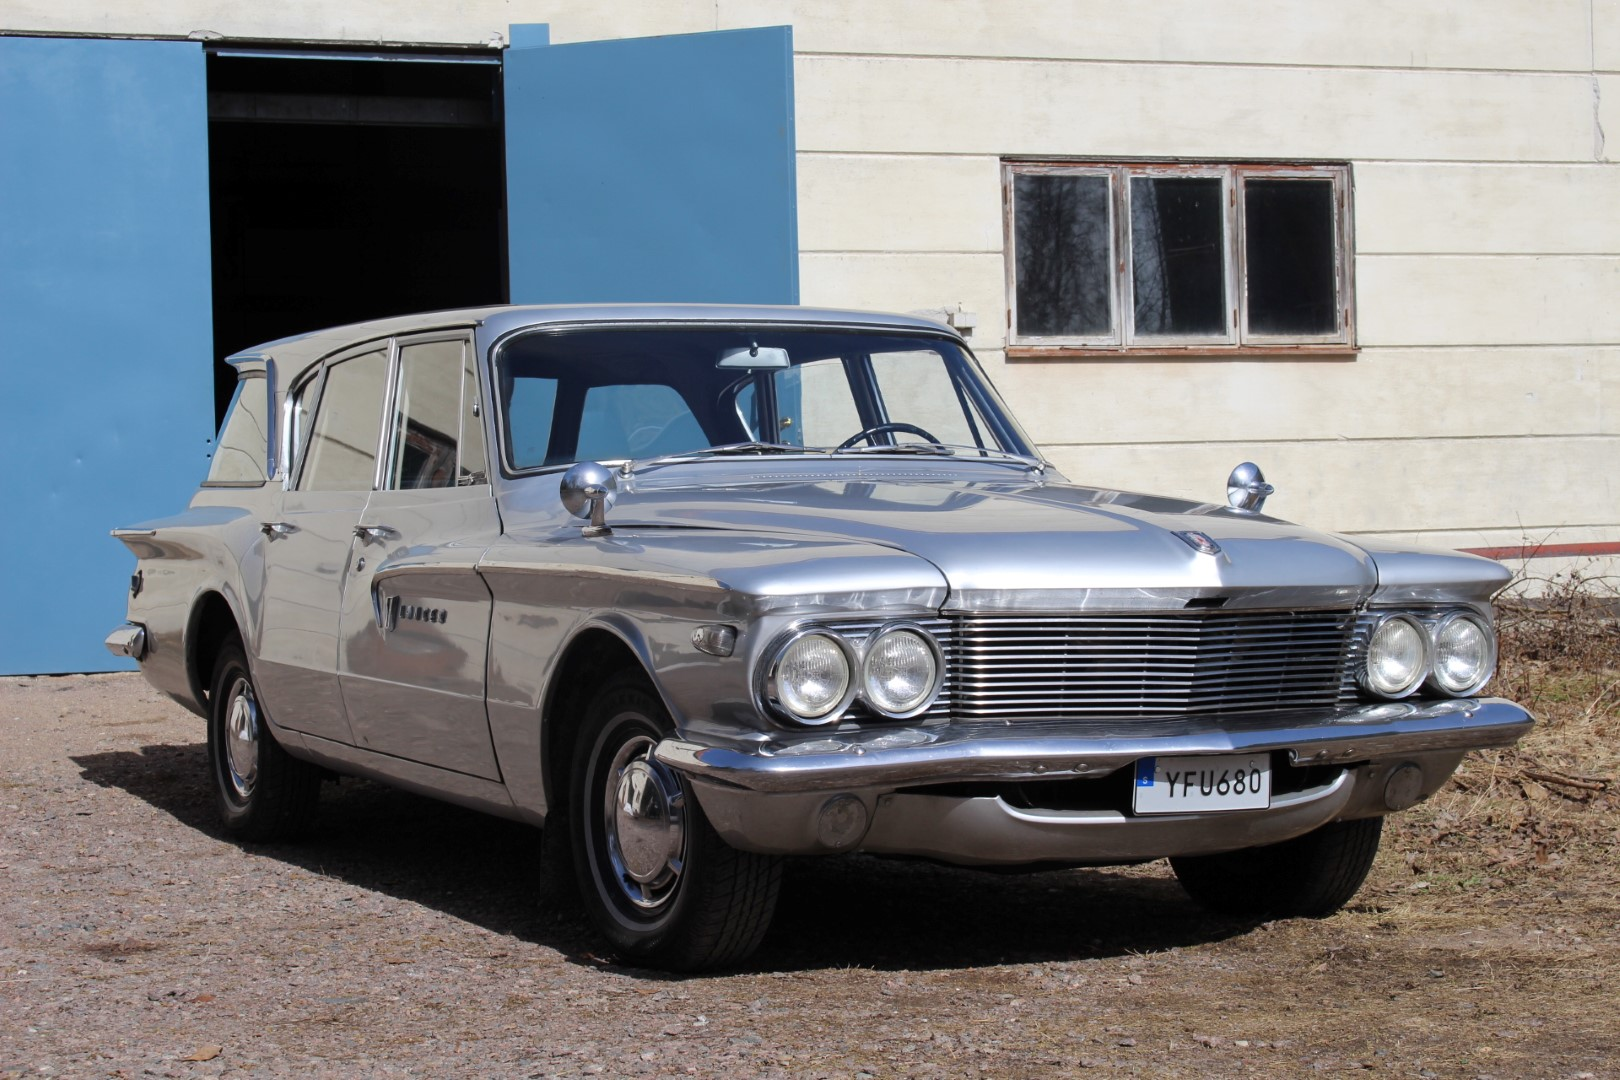 Dodge Lancer 170 Wagon 3 7 1961 3406mil 147hk Ps Auction We Value The Future Largest In Net Auctions